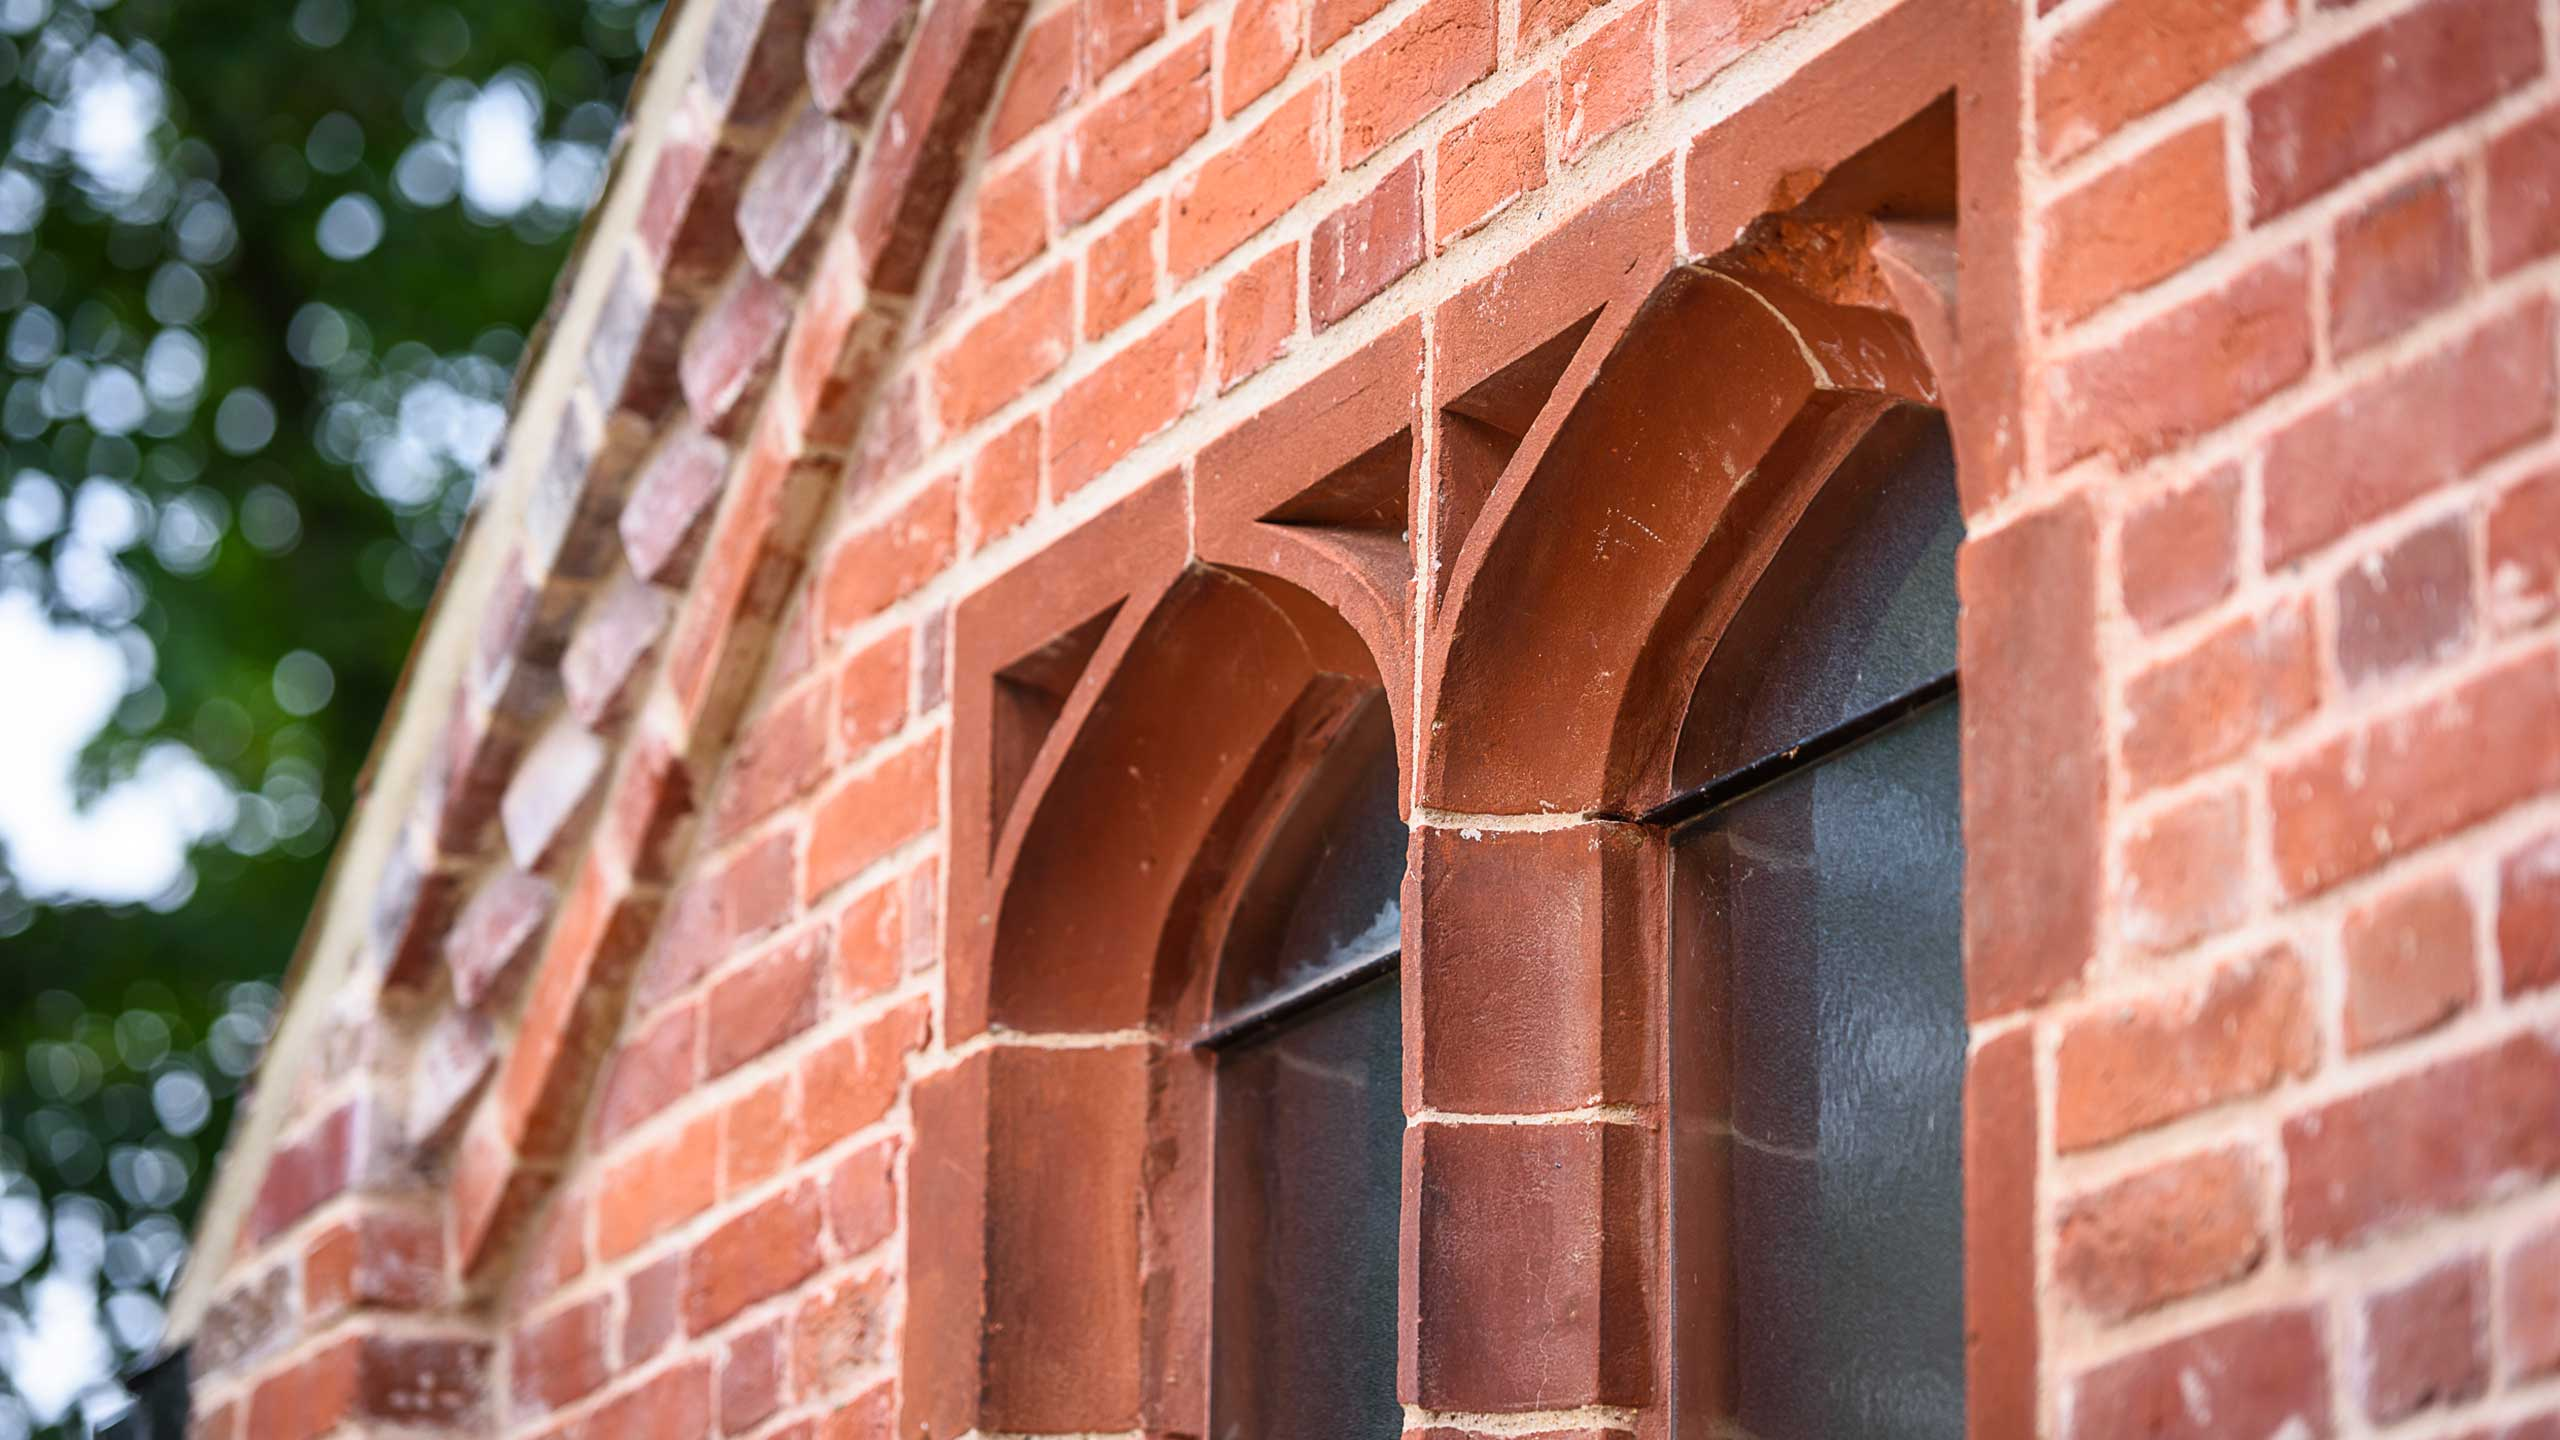 Repairs to St Margaret's Church in Hopton